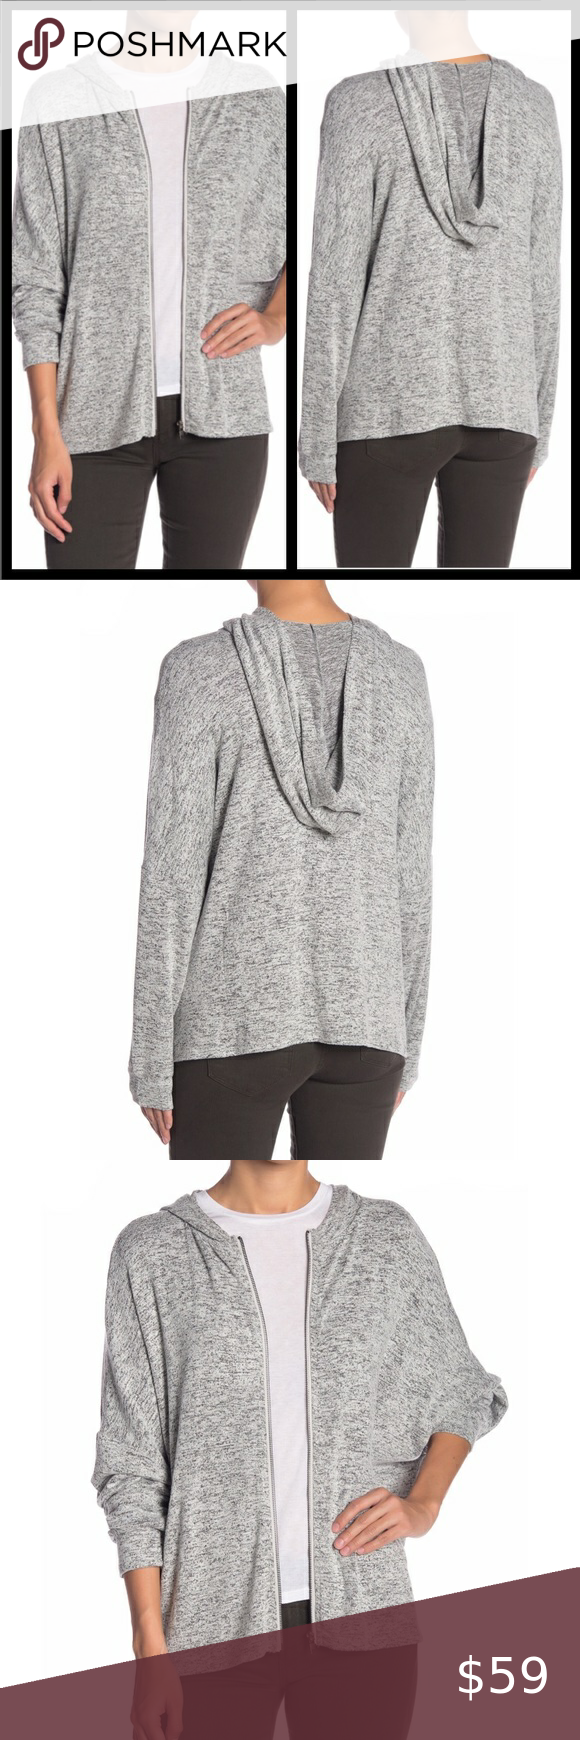 Cupcakes Cashmere Hannigan Dolman Sleeve Hoodie A Casual Hoodie With Dolman Sleeves Offers A Relaxed Comfy Cashmere Tops Dolman Sleeve Cupcakes And Cashmere [ 1740 x 580 Pixel ]